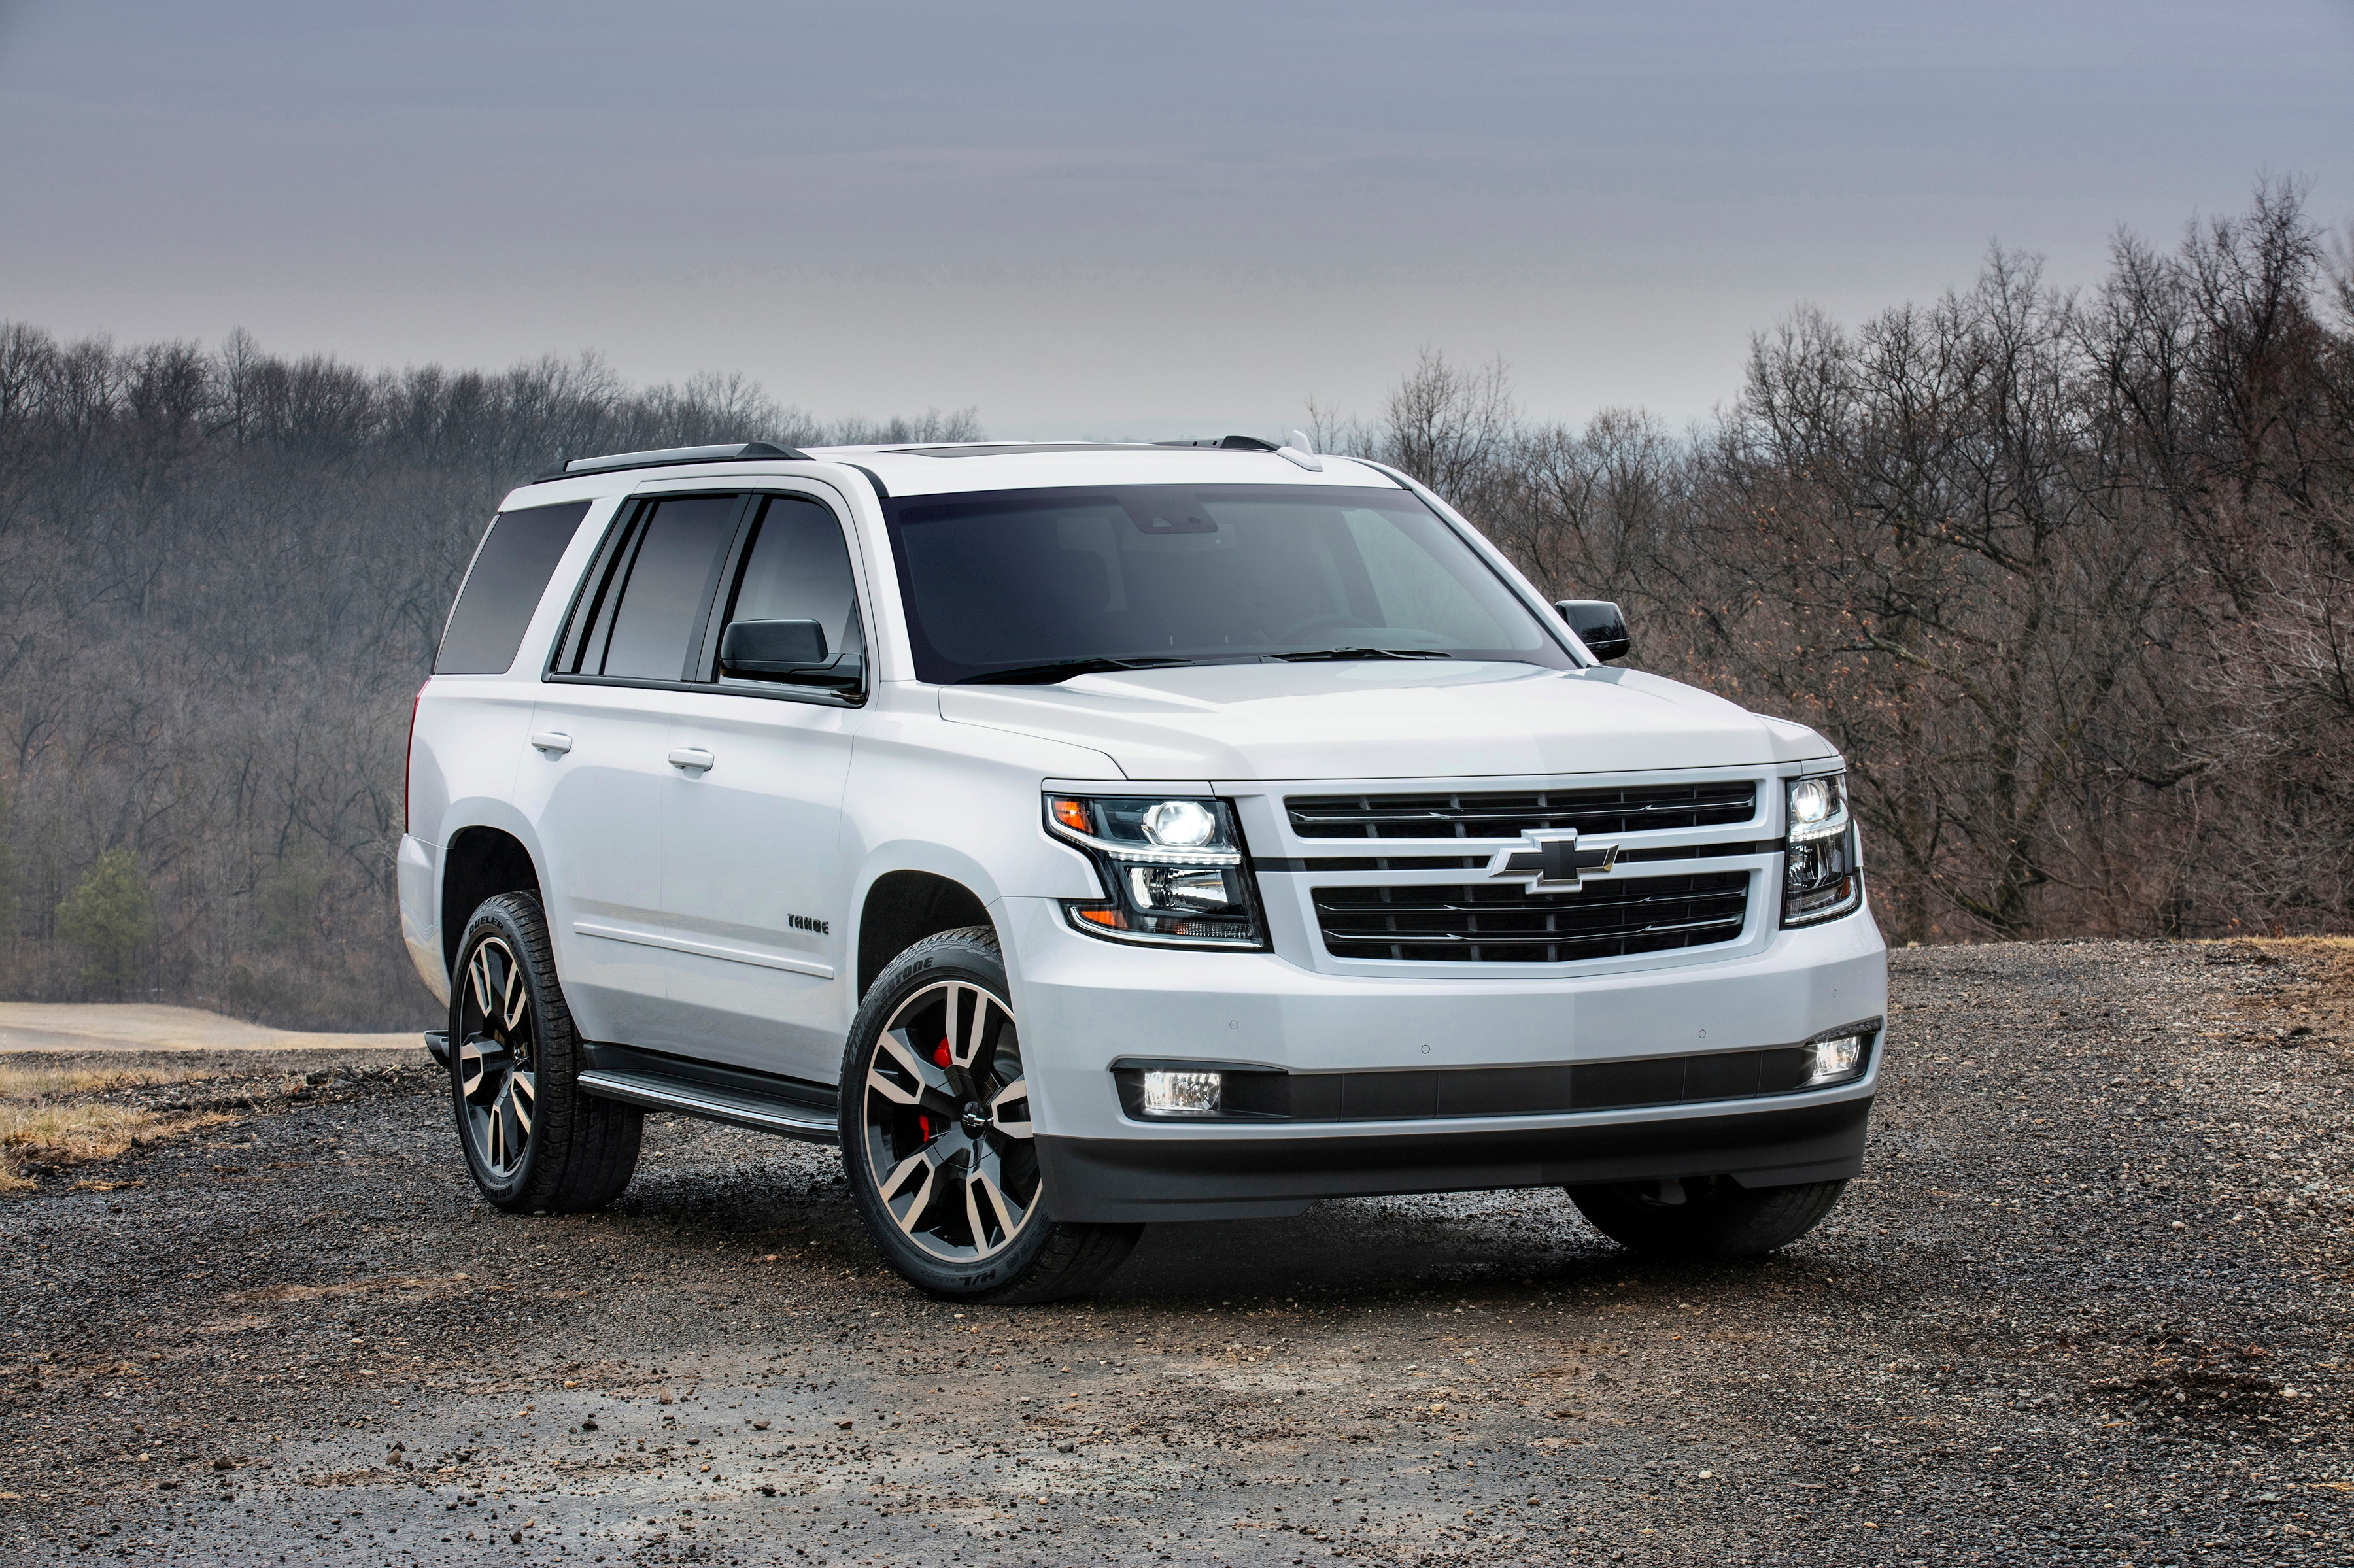 New Rally Inspired Trim to Debut on 2018 Suburban and Tahoe Models